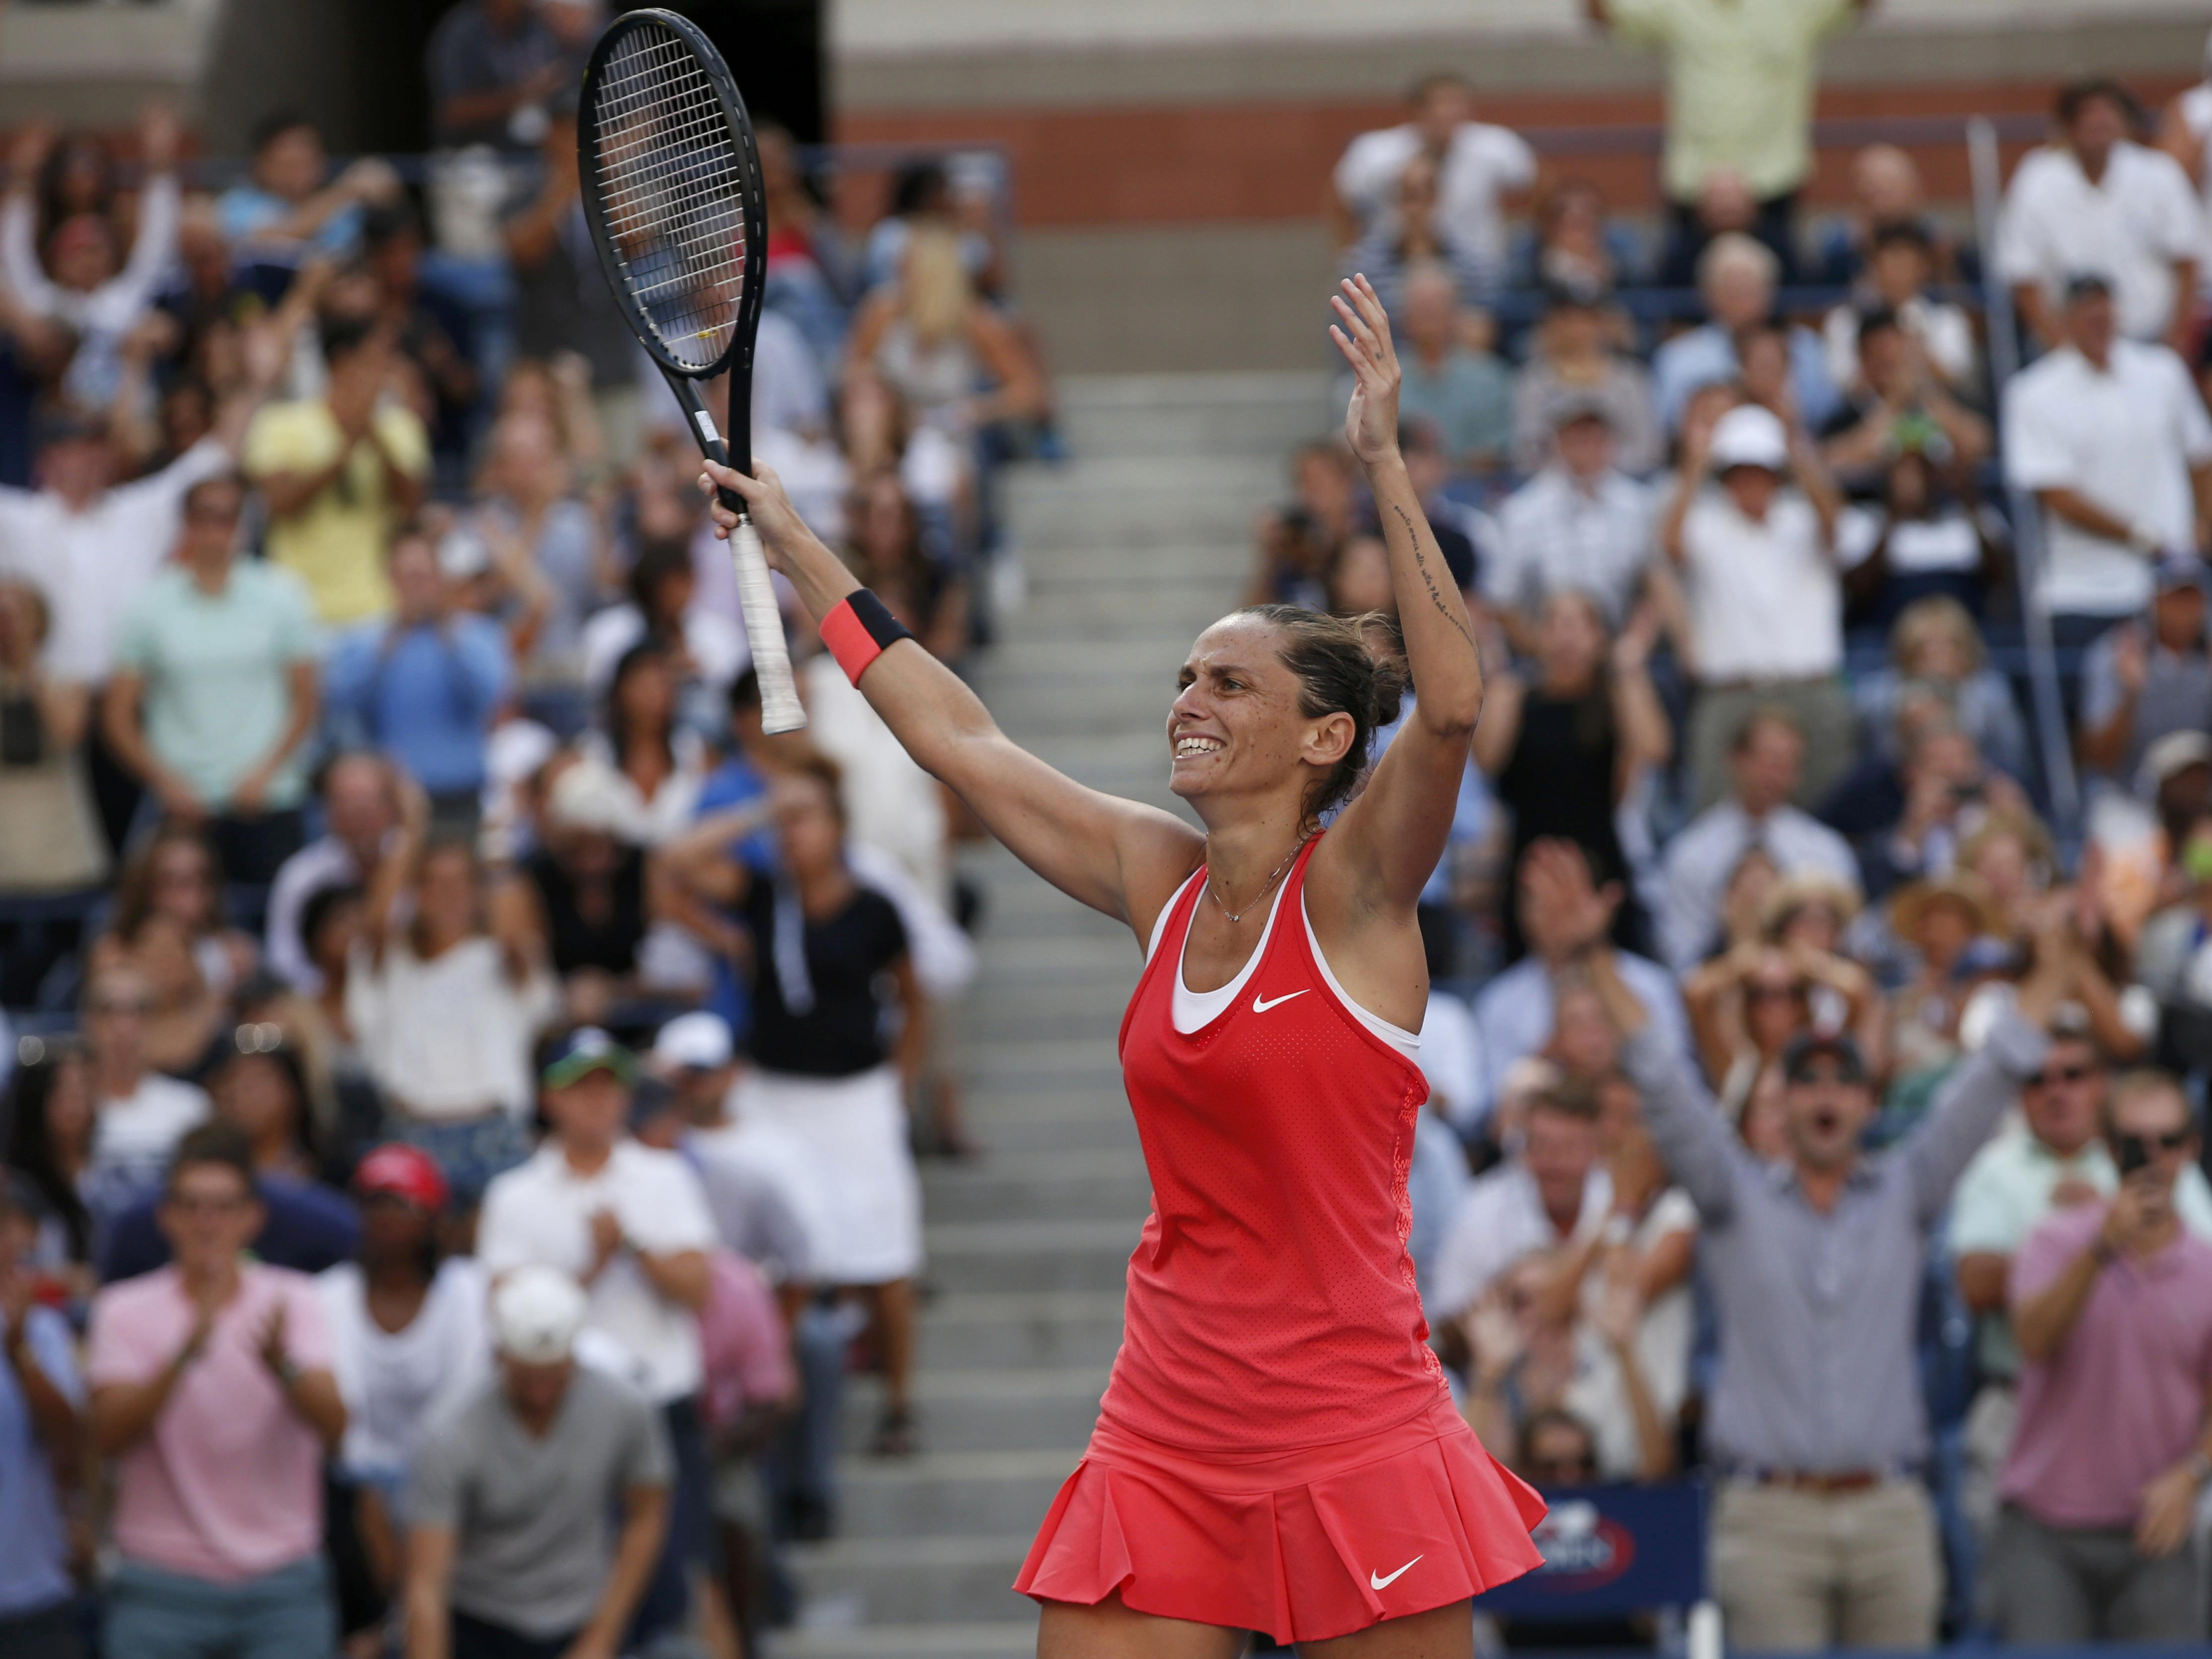 Roberta Vinci of Italy reacts after defeating Serena Williams of the U.S. in their women's singles semi-final match at the U.S. Open Championships tennis tournament in New York, September 11, 2015. REUTERS/Mike Segar